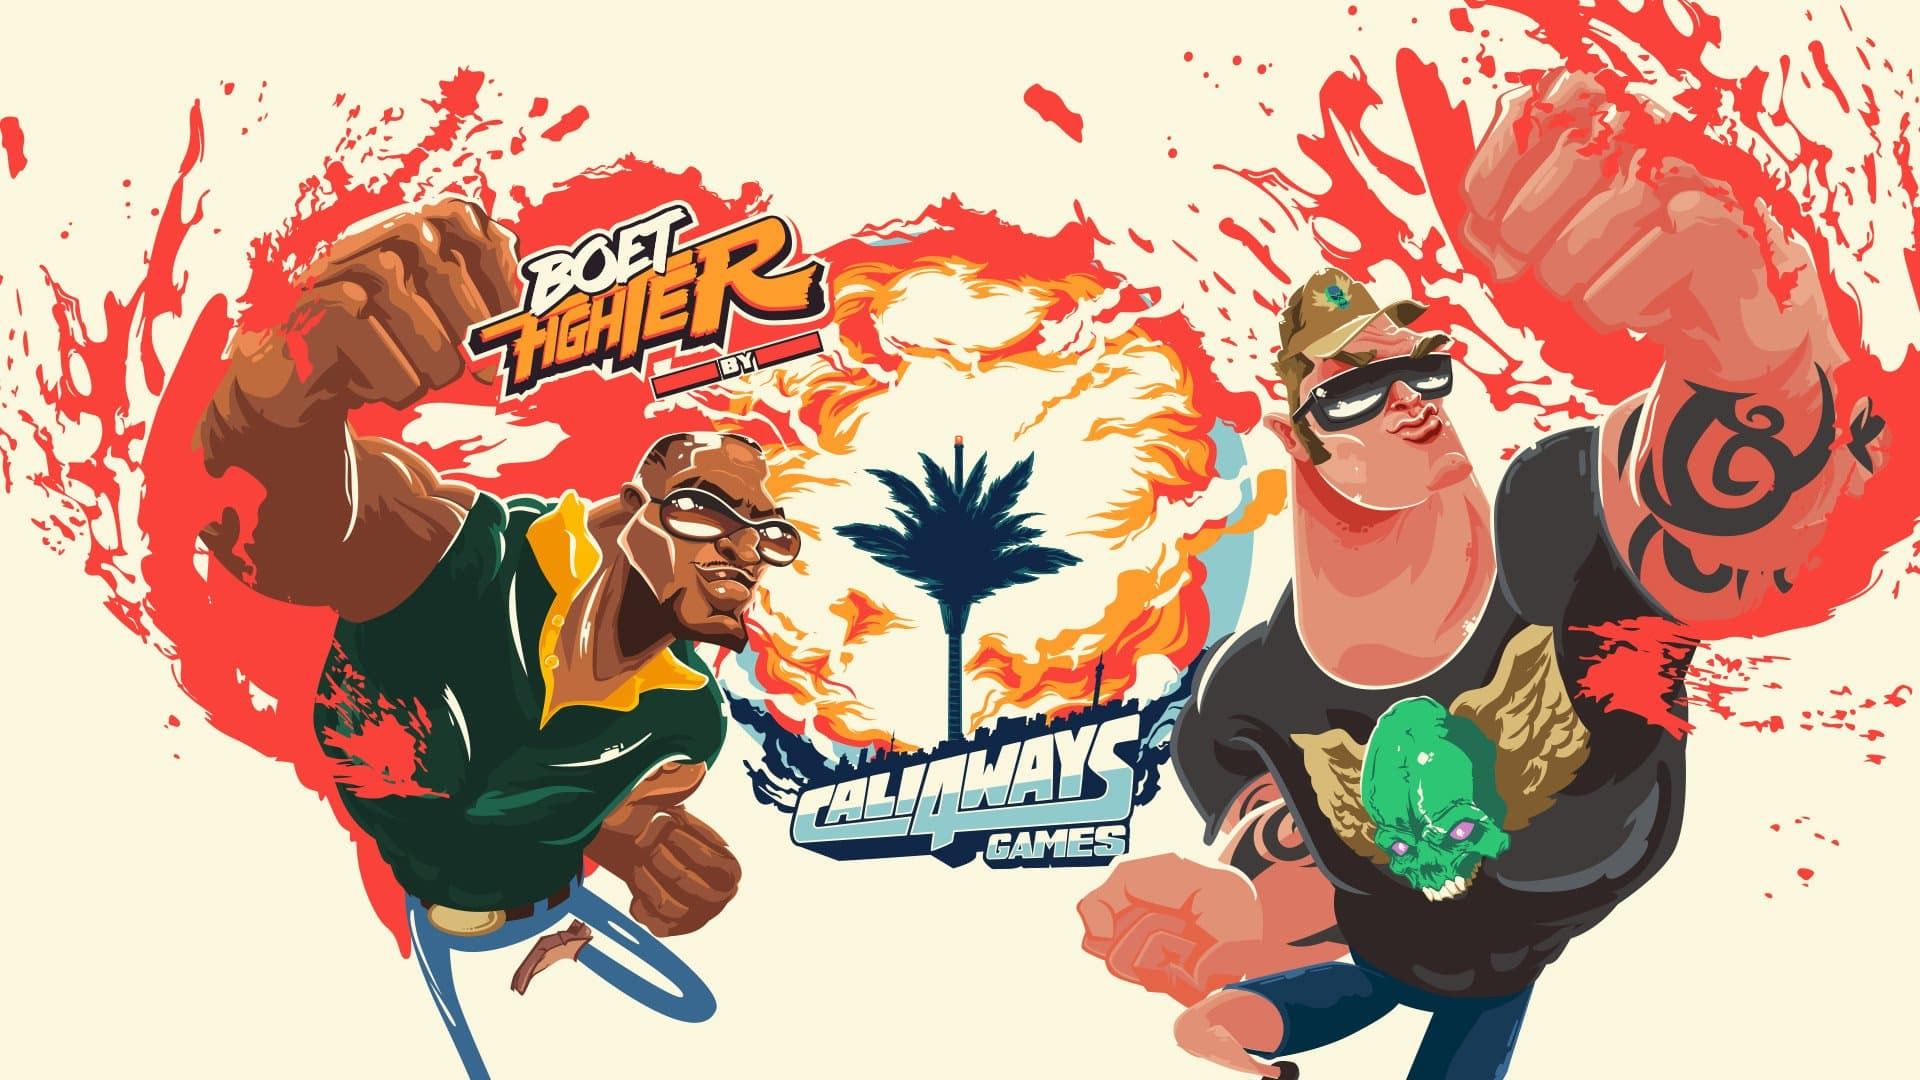 Boet Fighter release date South African Cali4ways Steam